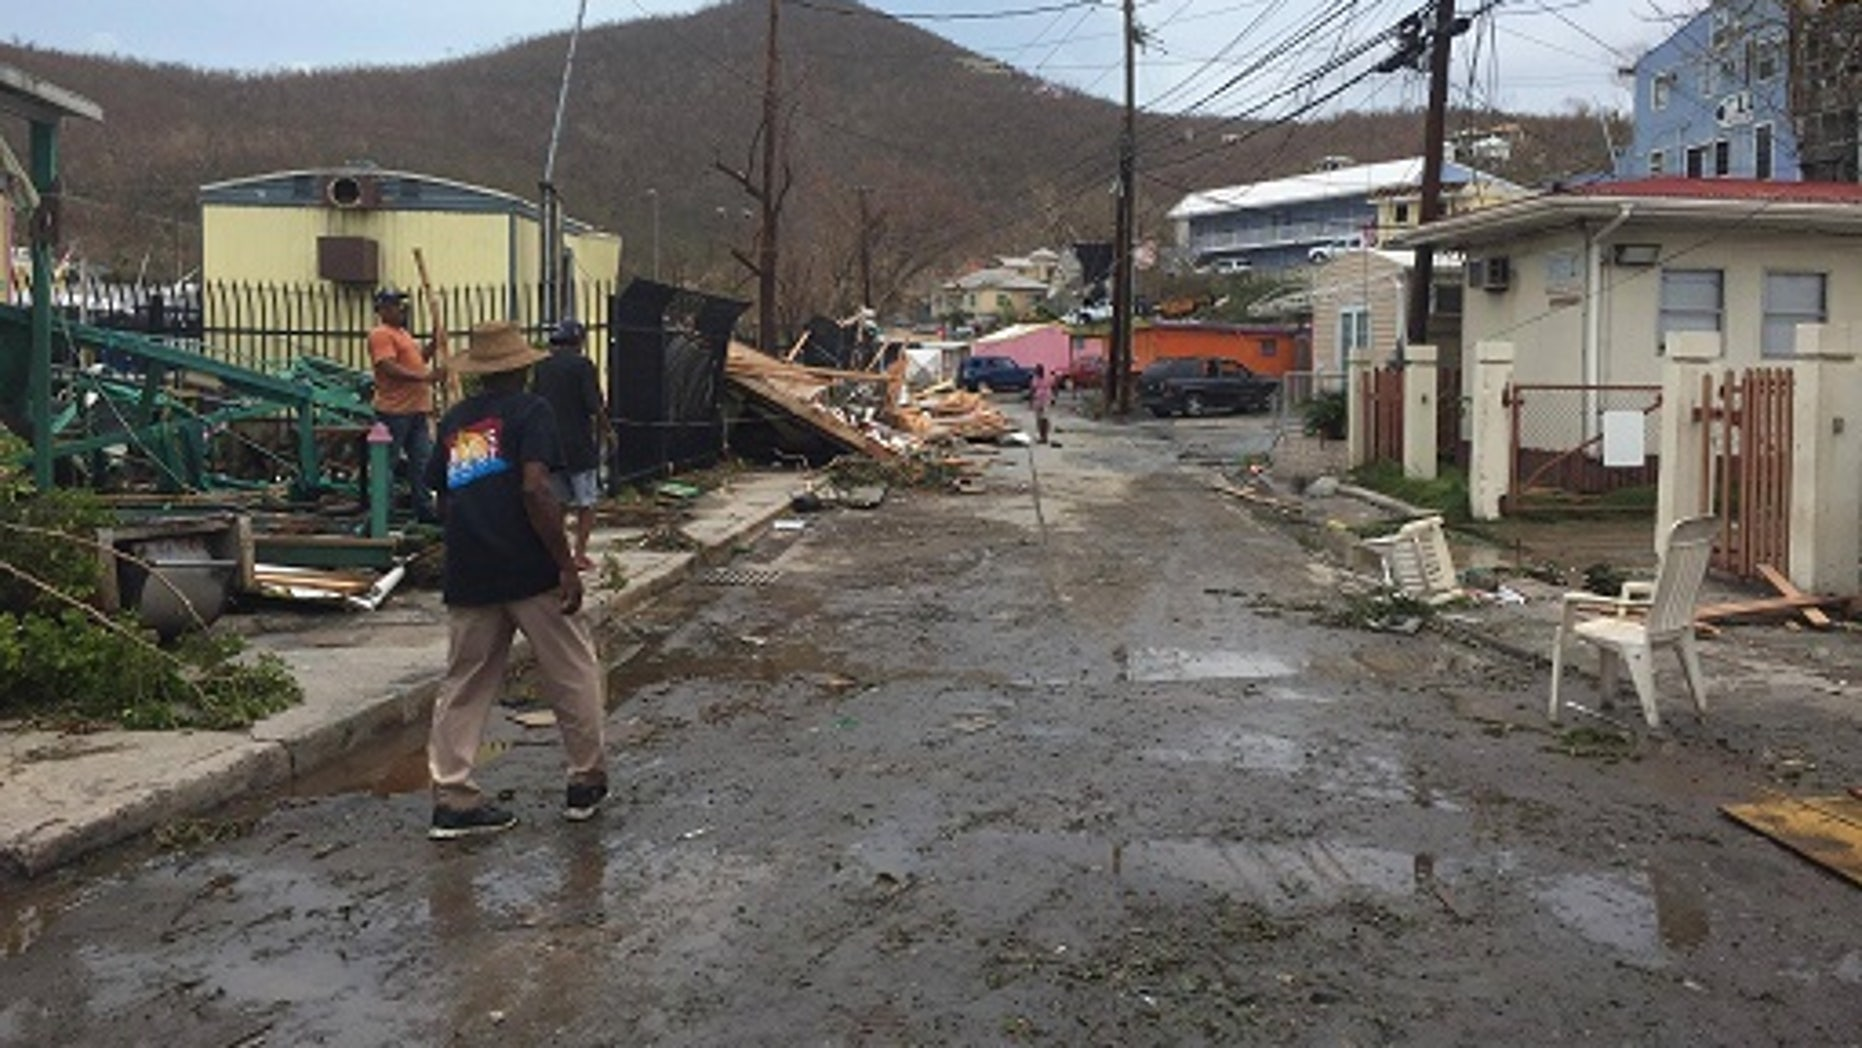 Acacia Wallenburg, a resident on Saint John Island, part of the U.S. Virgins Islands, took pictures of the damage from Hurricane Irma.